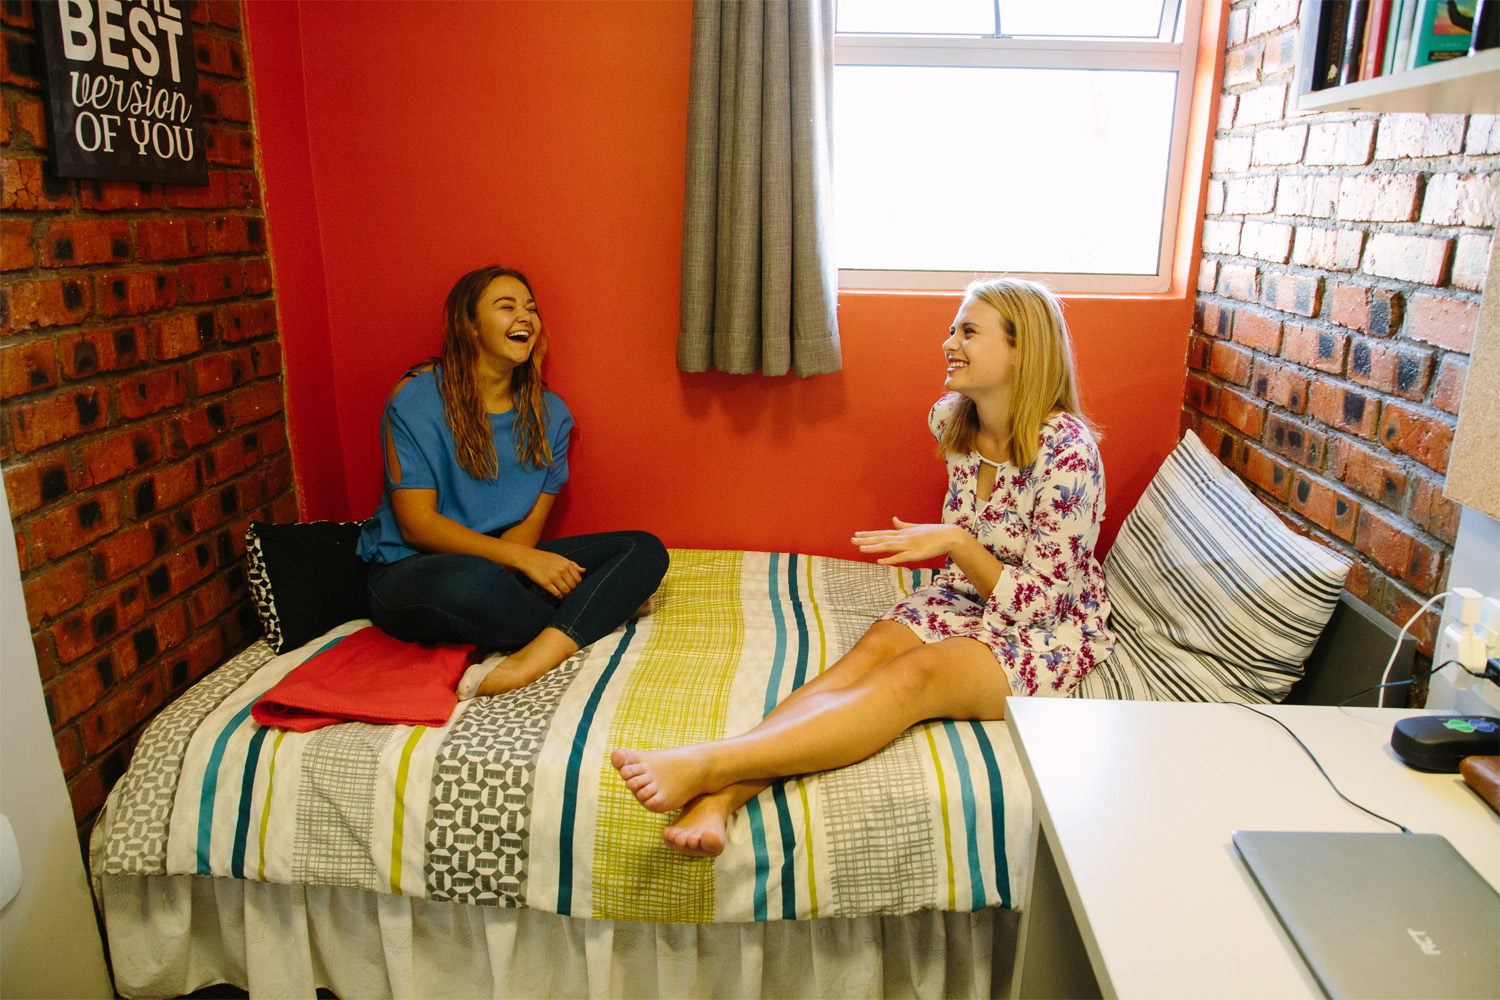 Lincoln_House_Dorm_Room